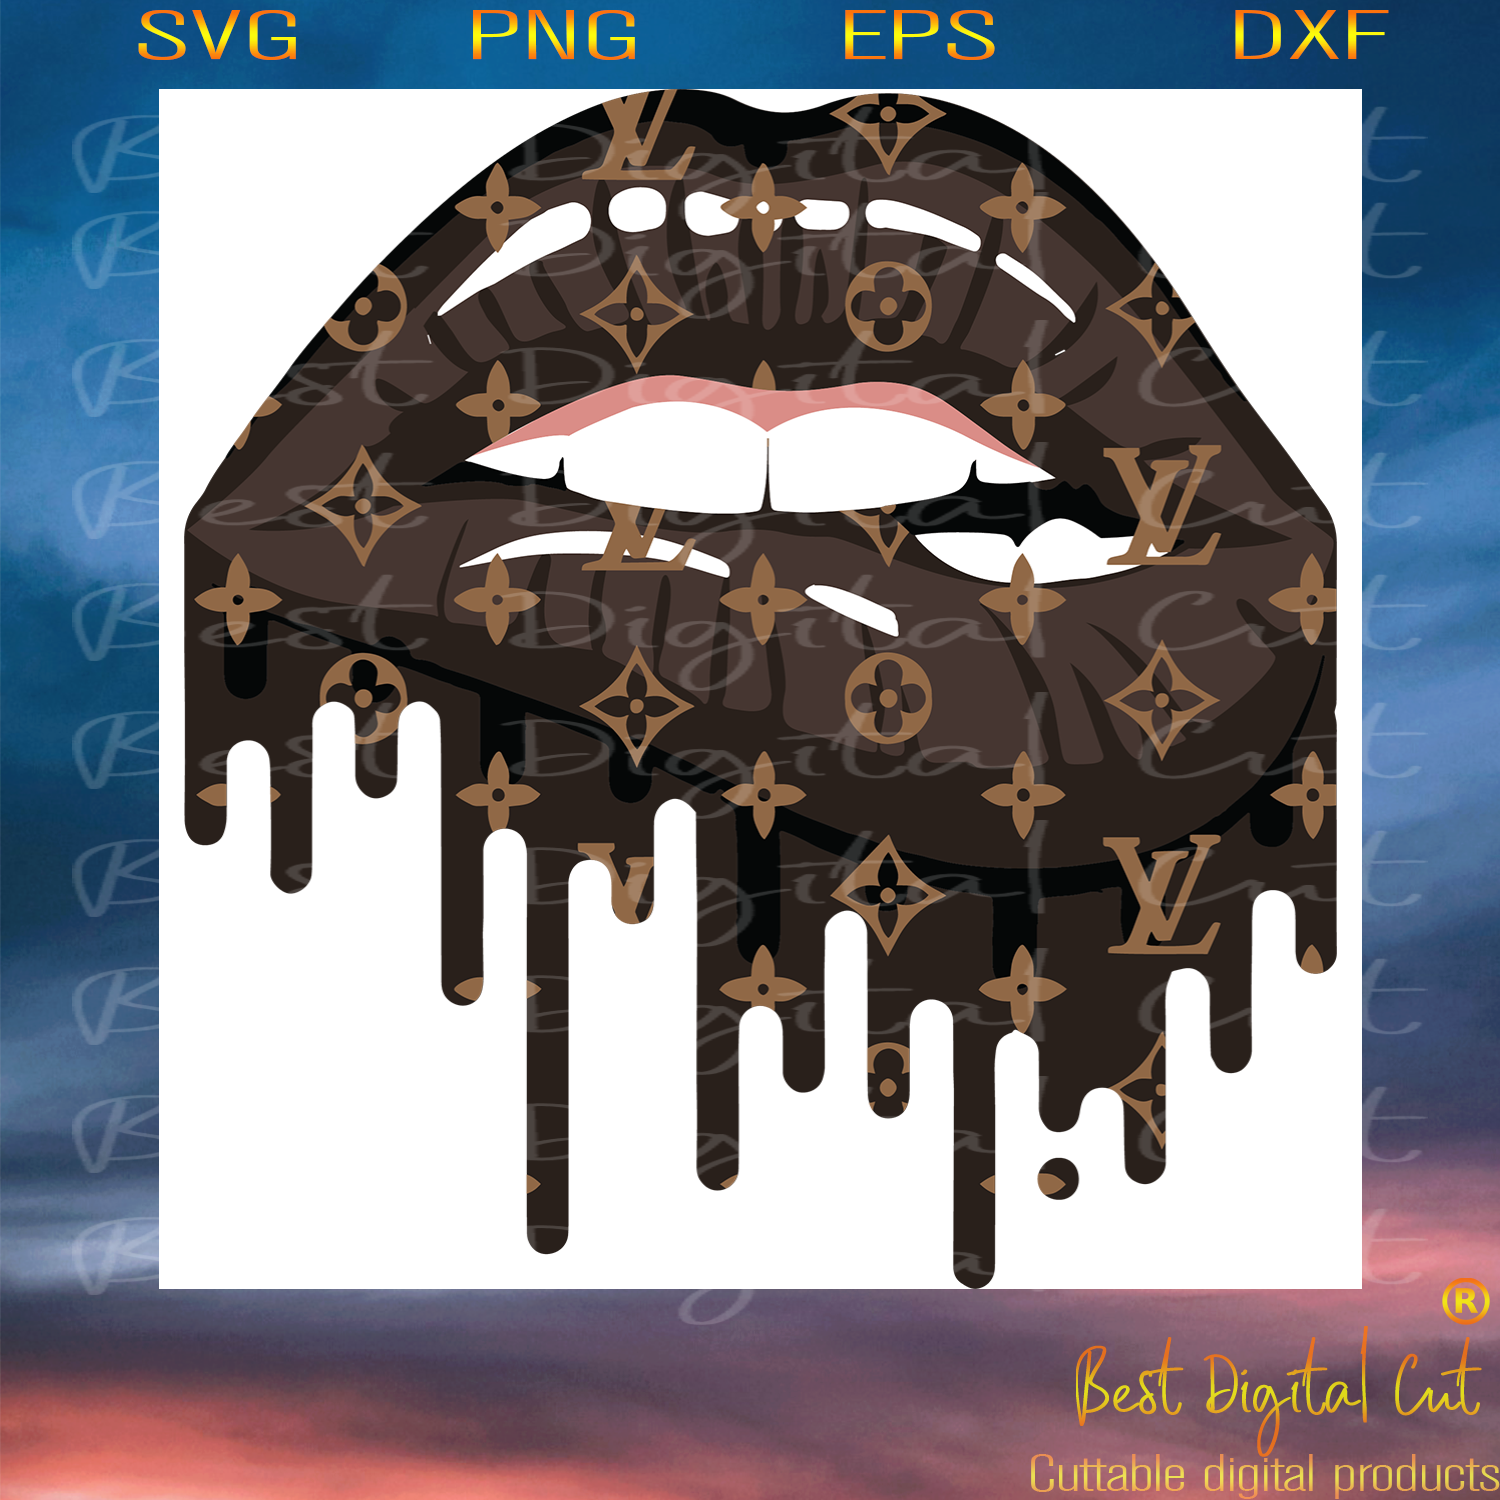 Sexy Lv Lip Logo Trending Svg Lv Lip Logo Svg Louis Vuitton Svg Lv Best Digital Cut